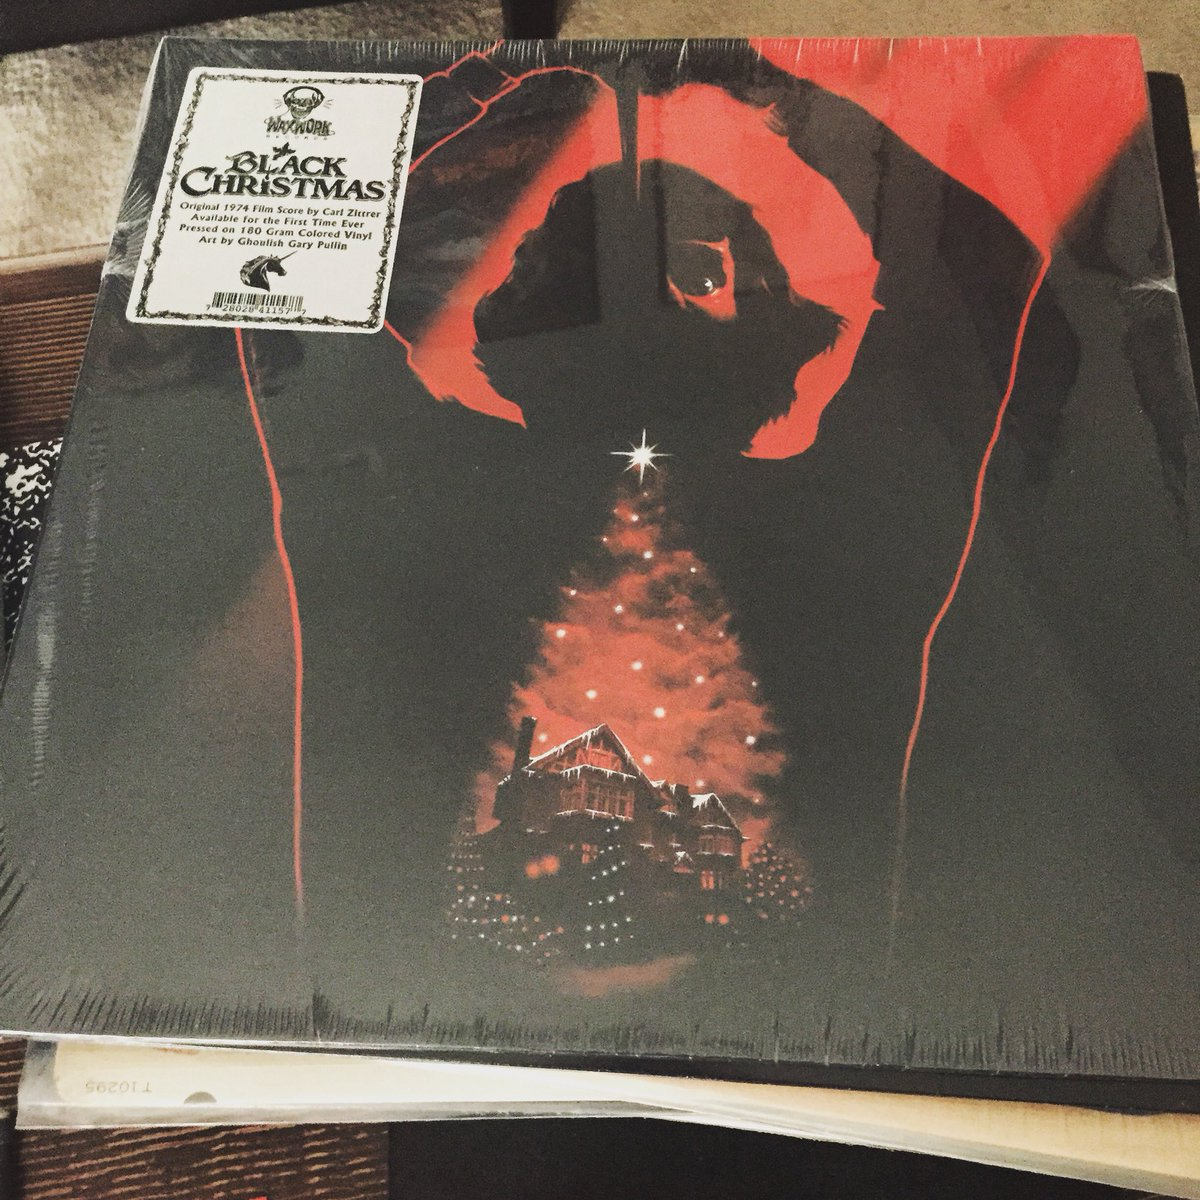 Black Christmas soundtrack on #vinyl Check out my vinyl finds 4 the week https://t.co/KhYKeGGpyp #horror #soundtrack https://t.co/rmIvzYTWR4